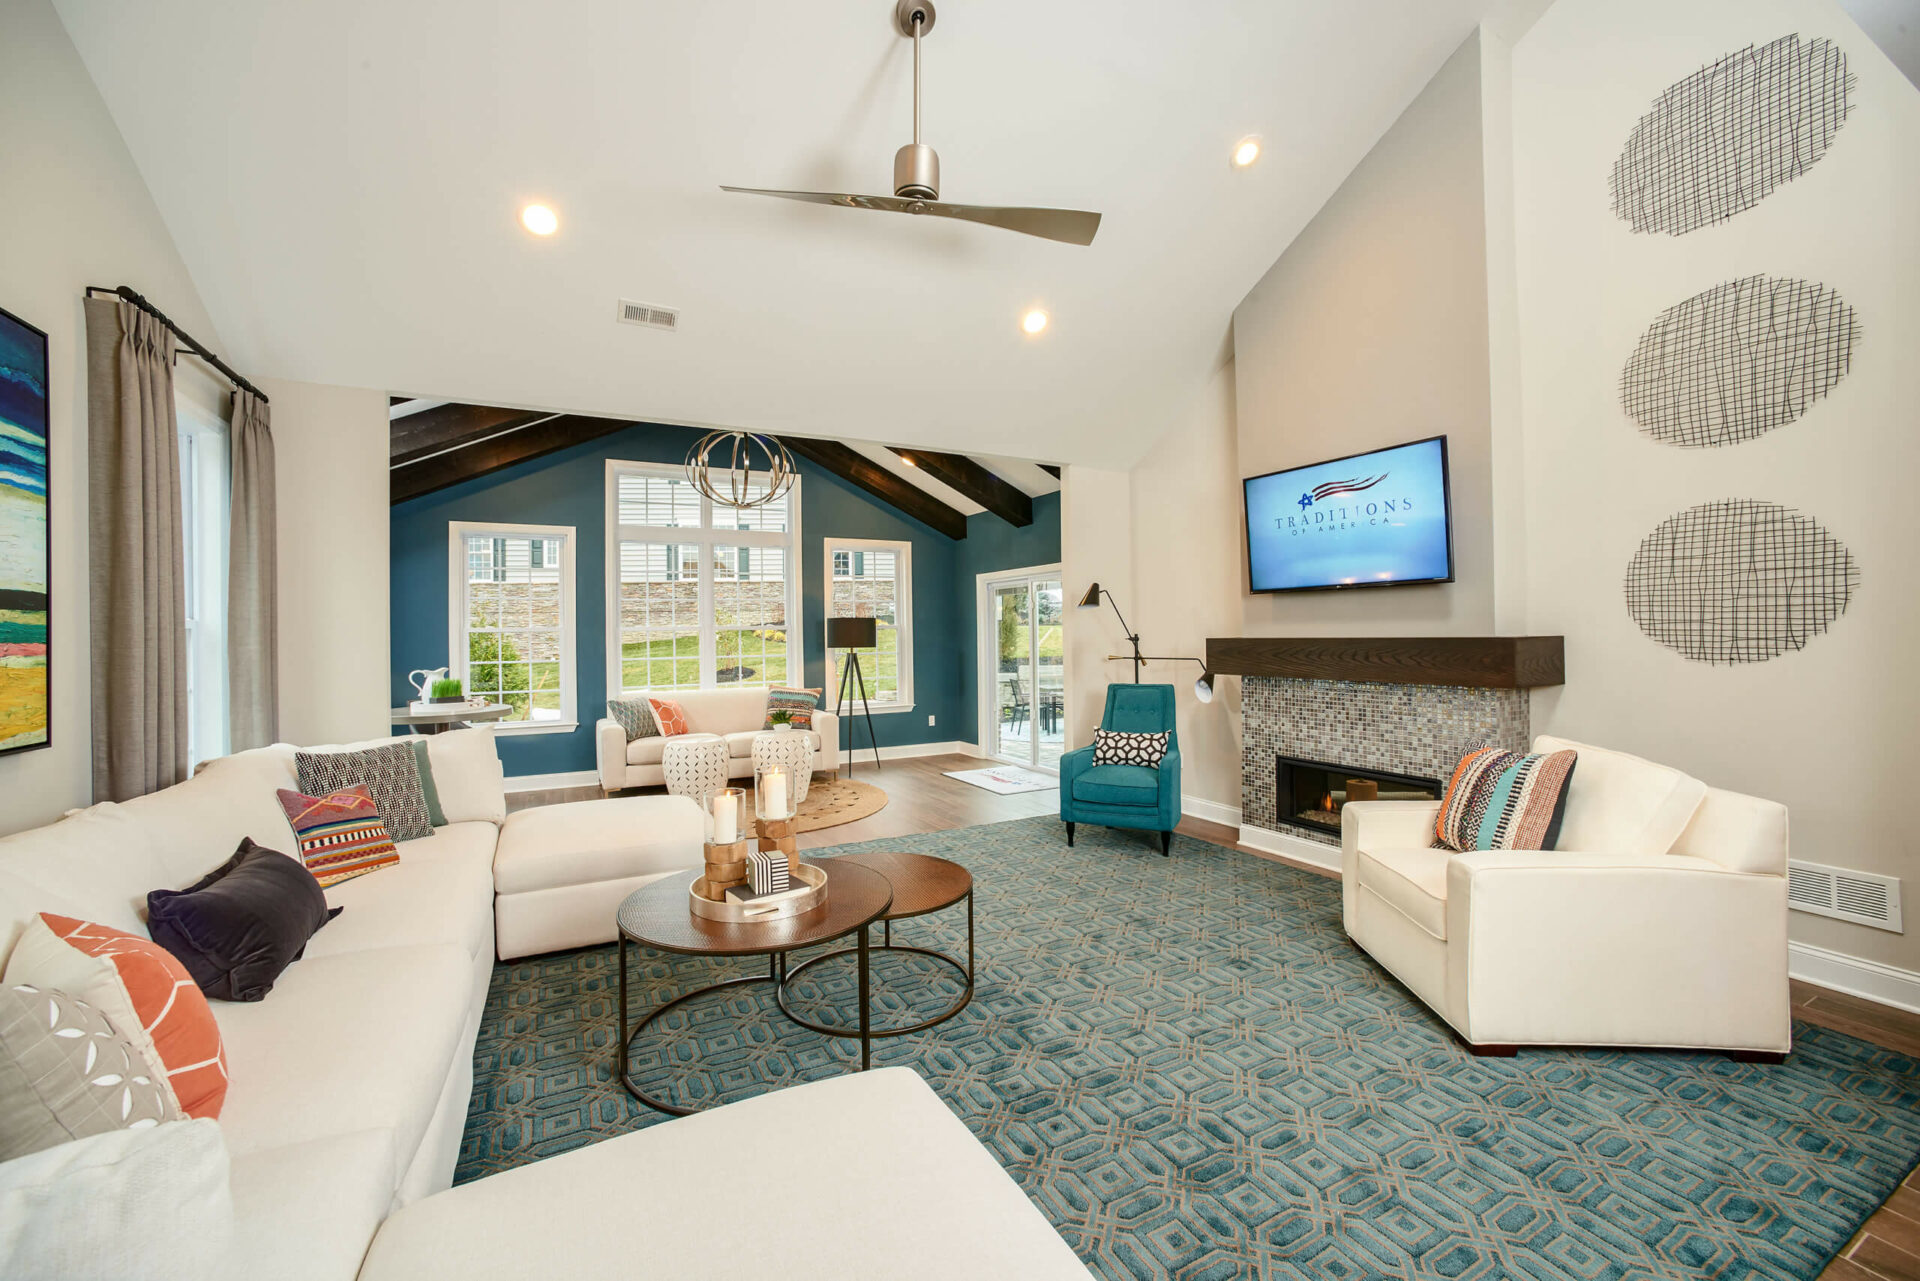 Betsy Ross modern living room with teal accents